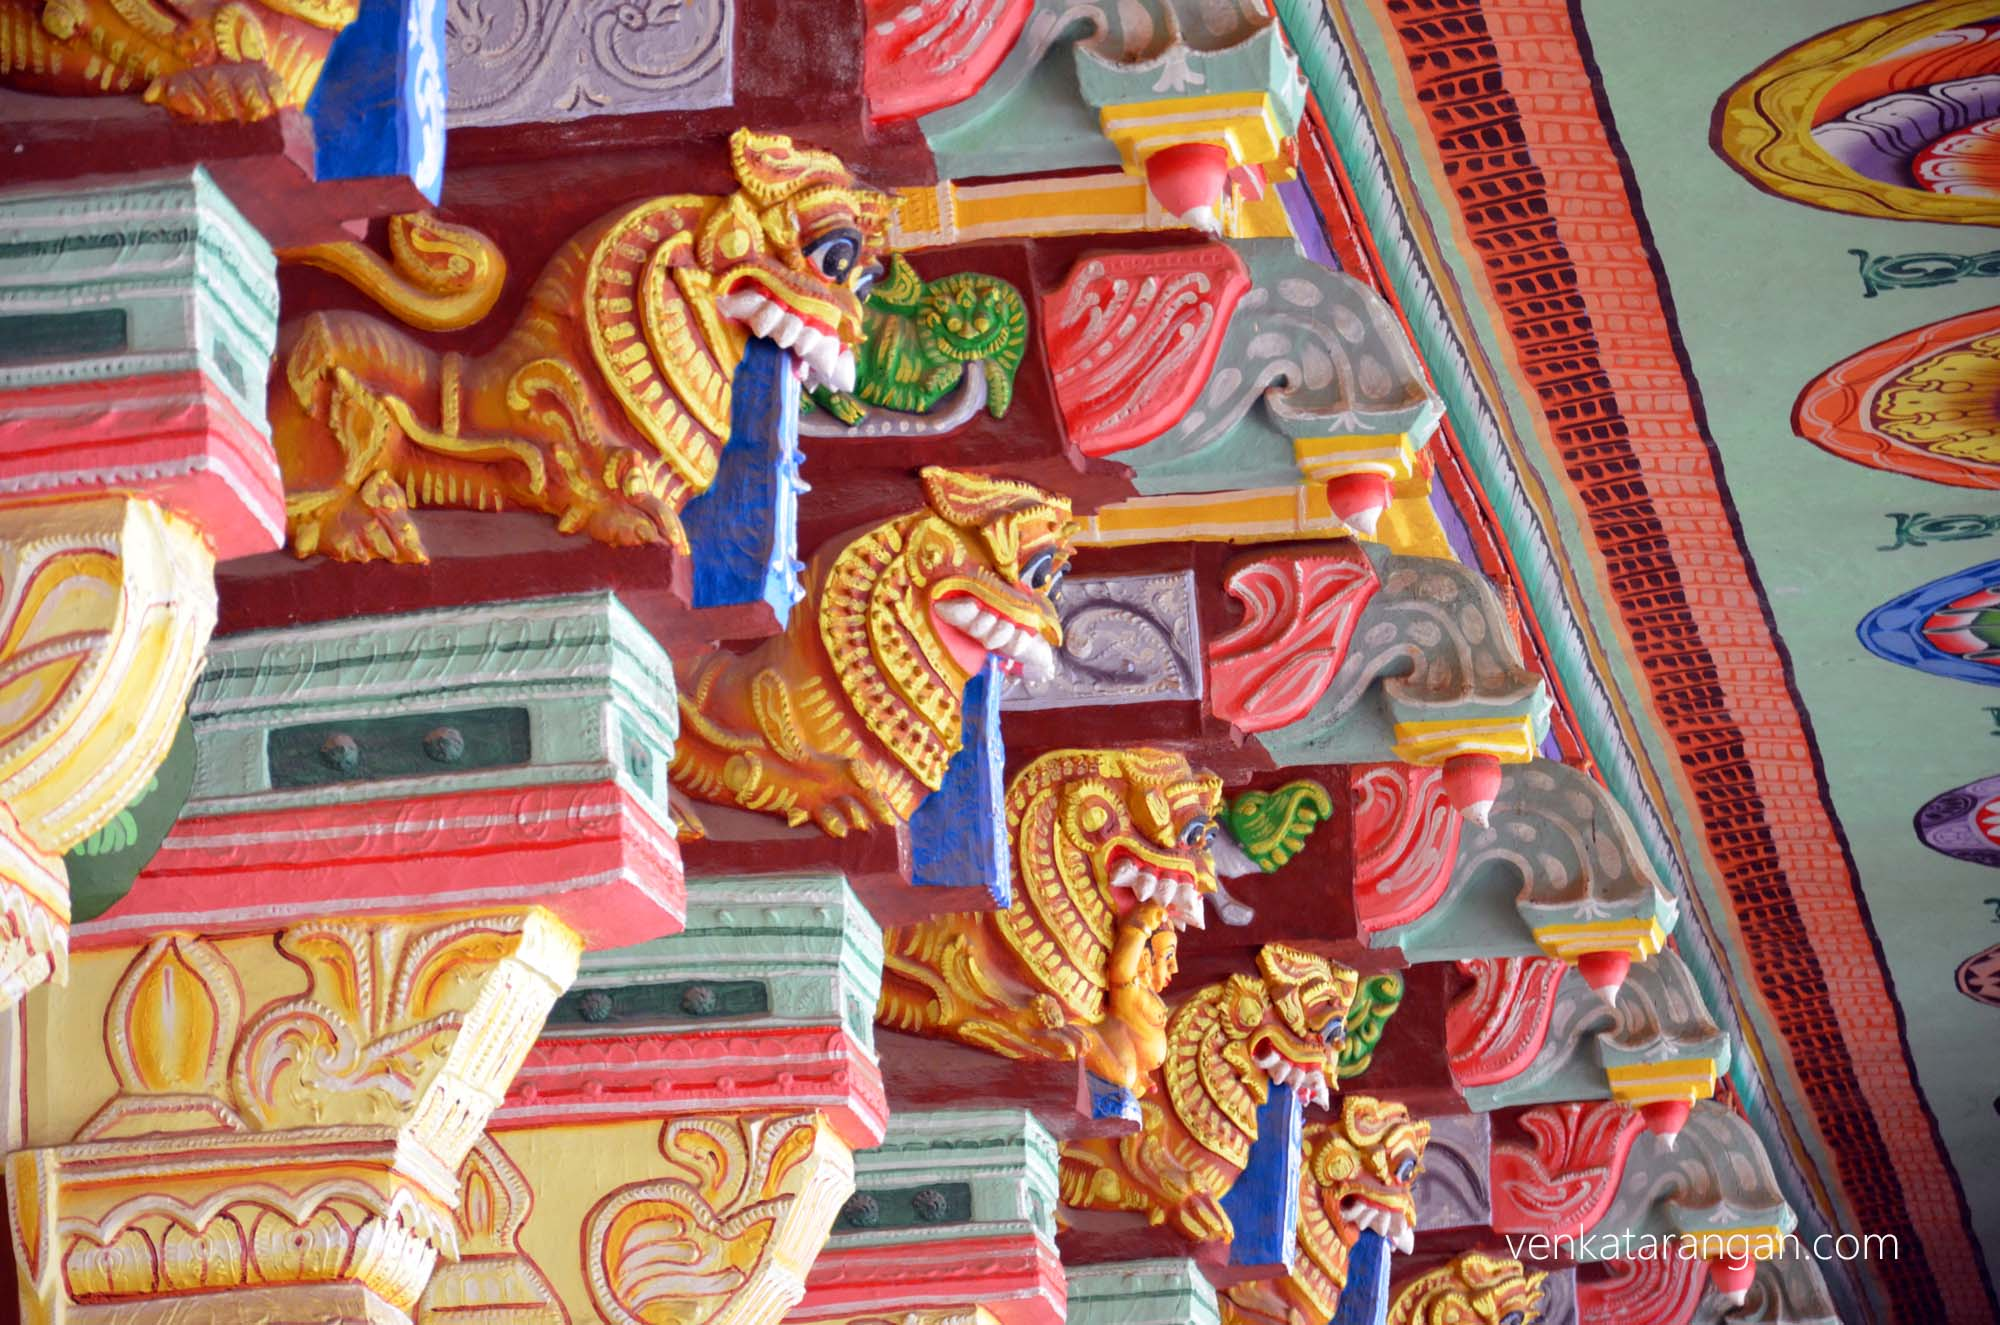 Mythical lions and devas are depicted in every pillar